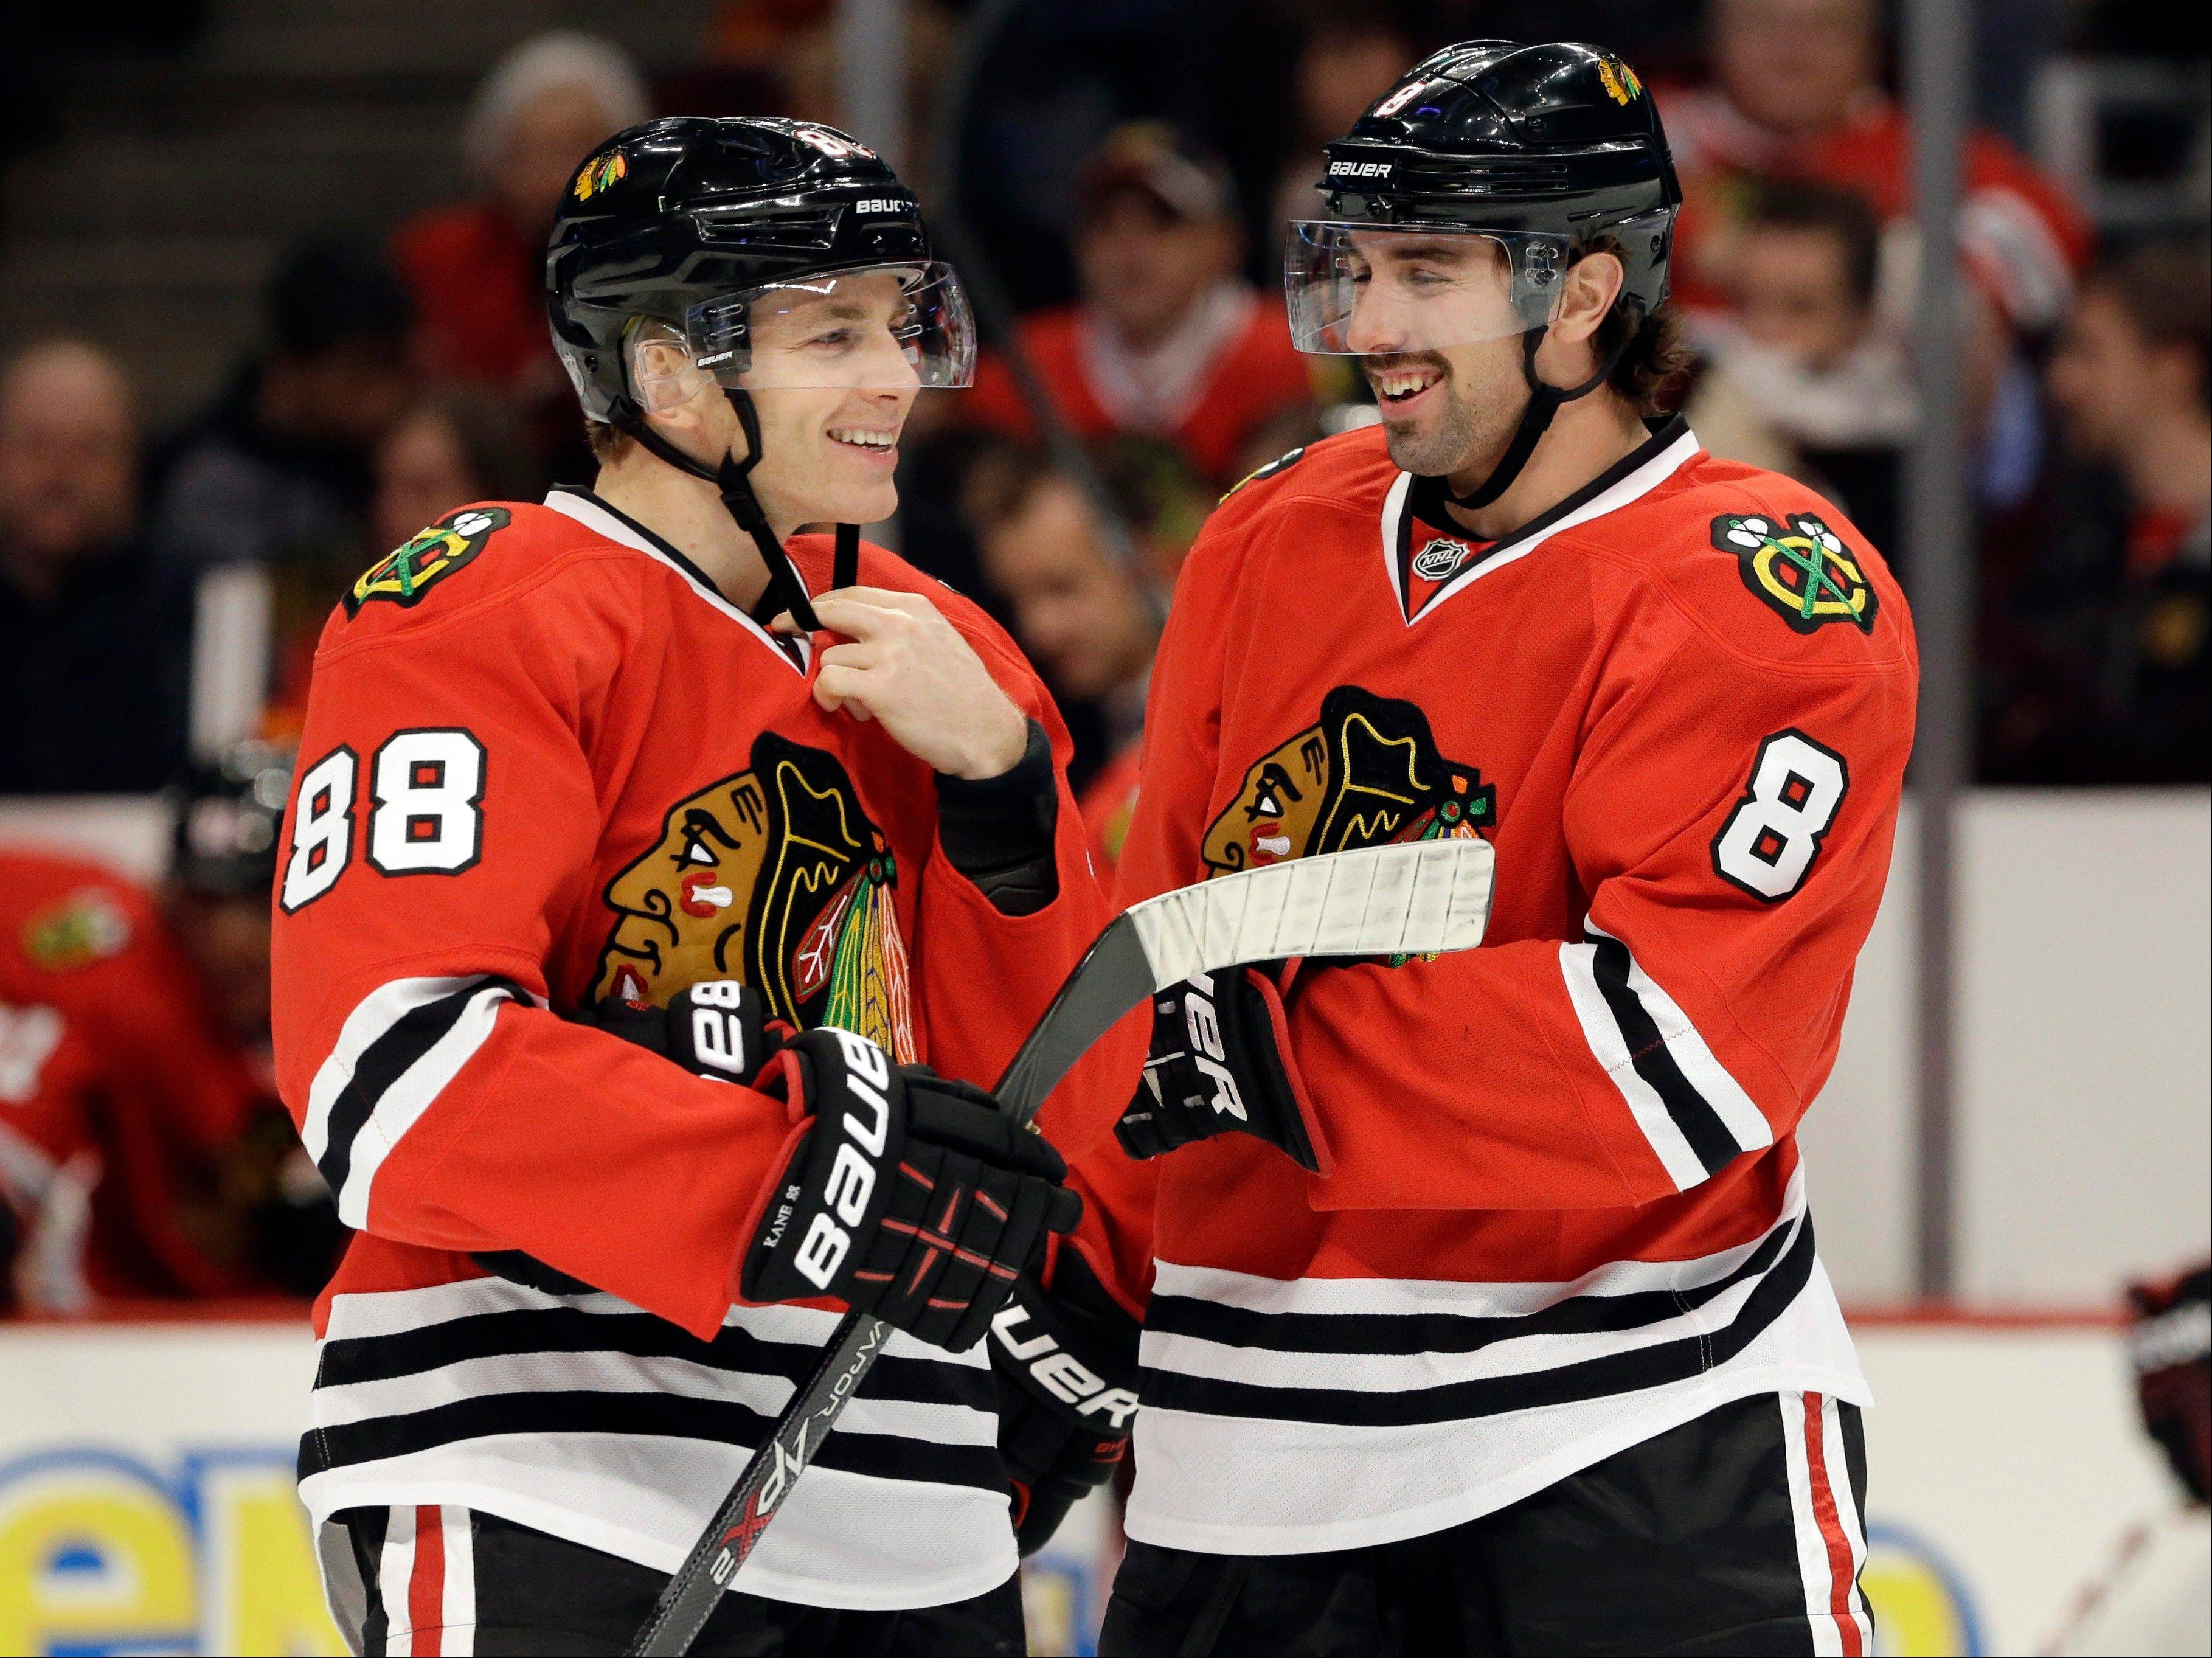 Chicago Blackhawks' Patrick Kane, left, smiles as he talks with Nick Leddy (8) during the first period of an NHL hockey game against the Phoenix Coyotes in Chicago, Thursday, Nov. 14, 2013.